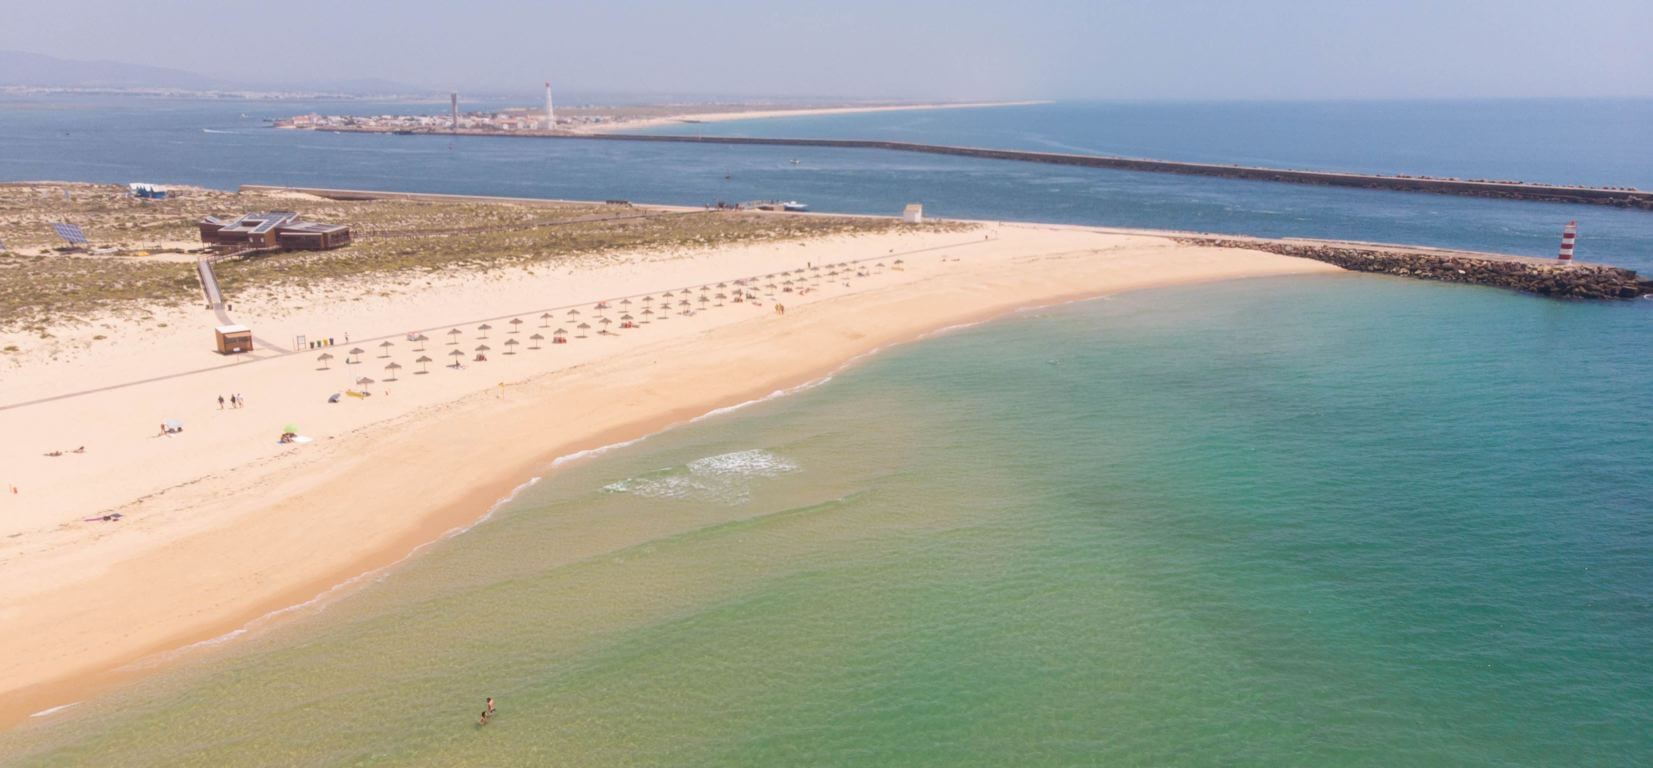 Ilha Deserta, one of the best beaches of the Algarve